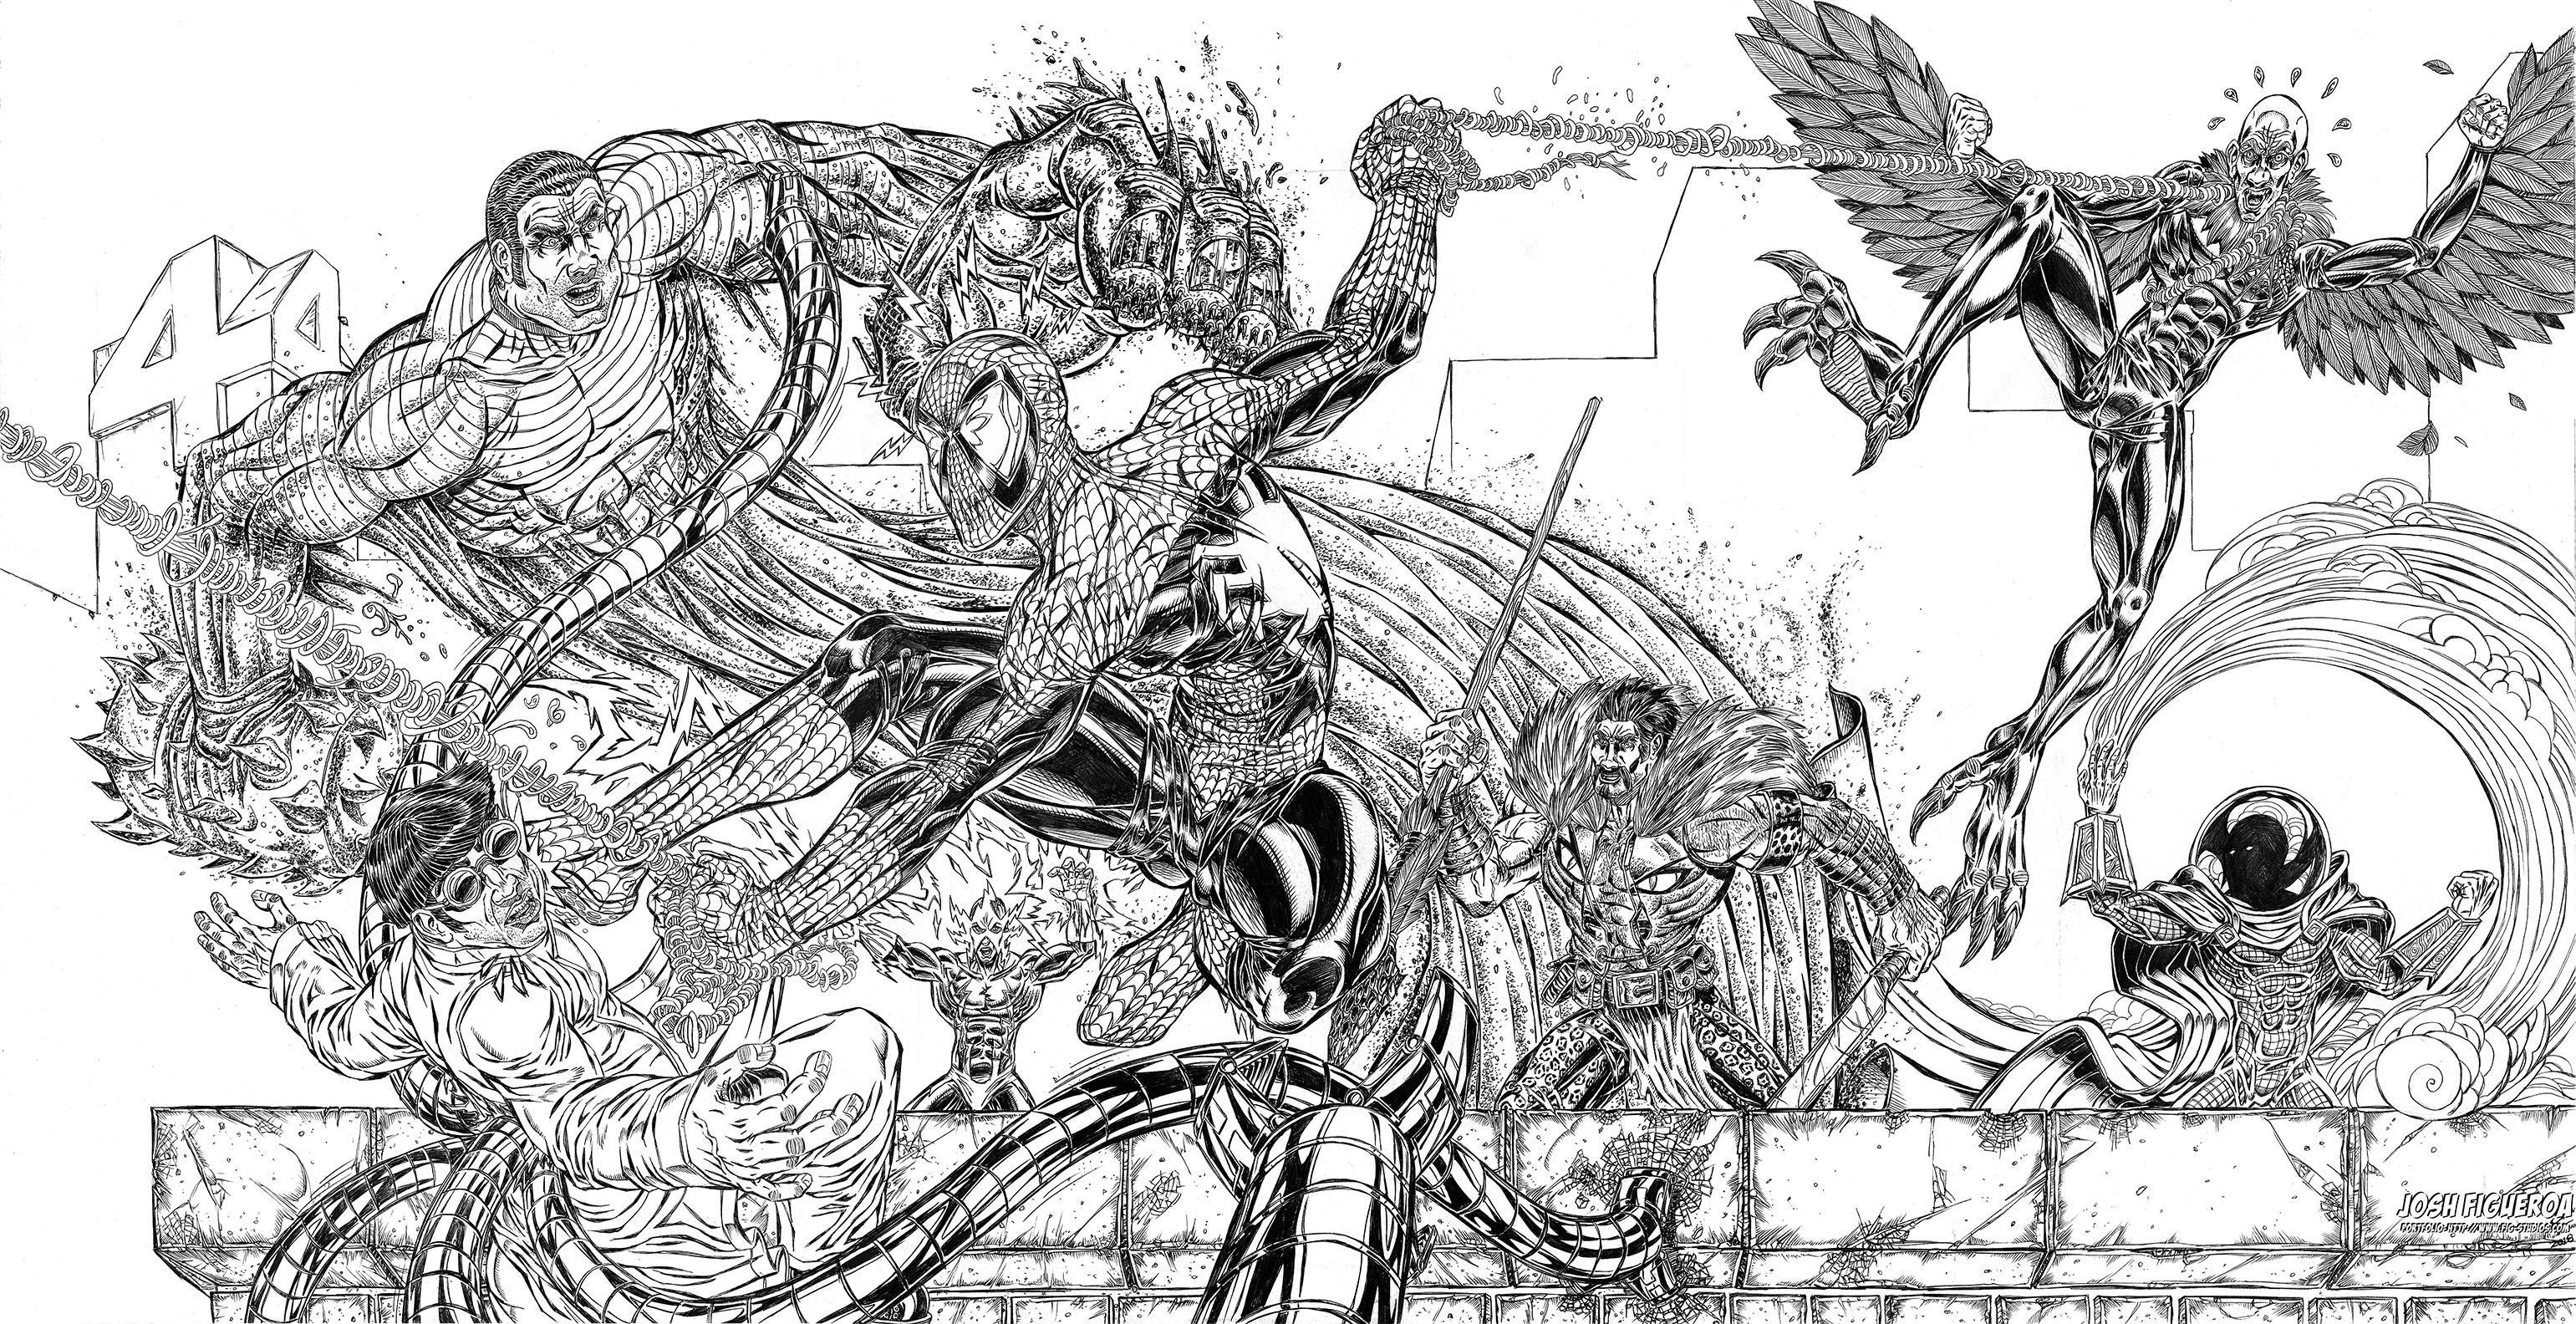 Spiderman Vs Sinister Six